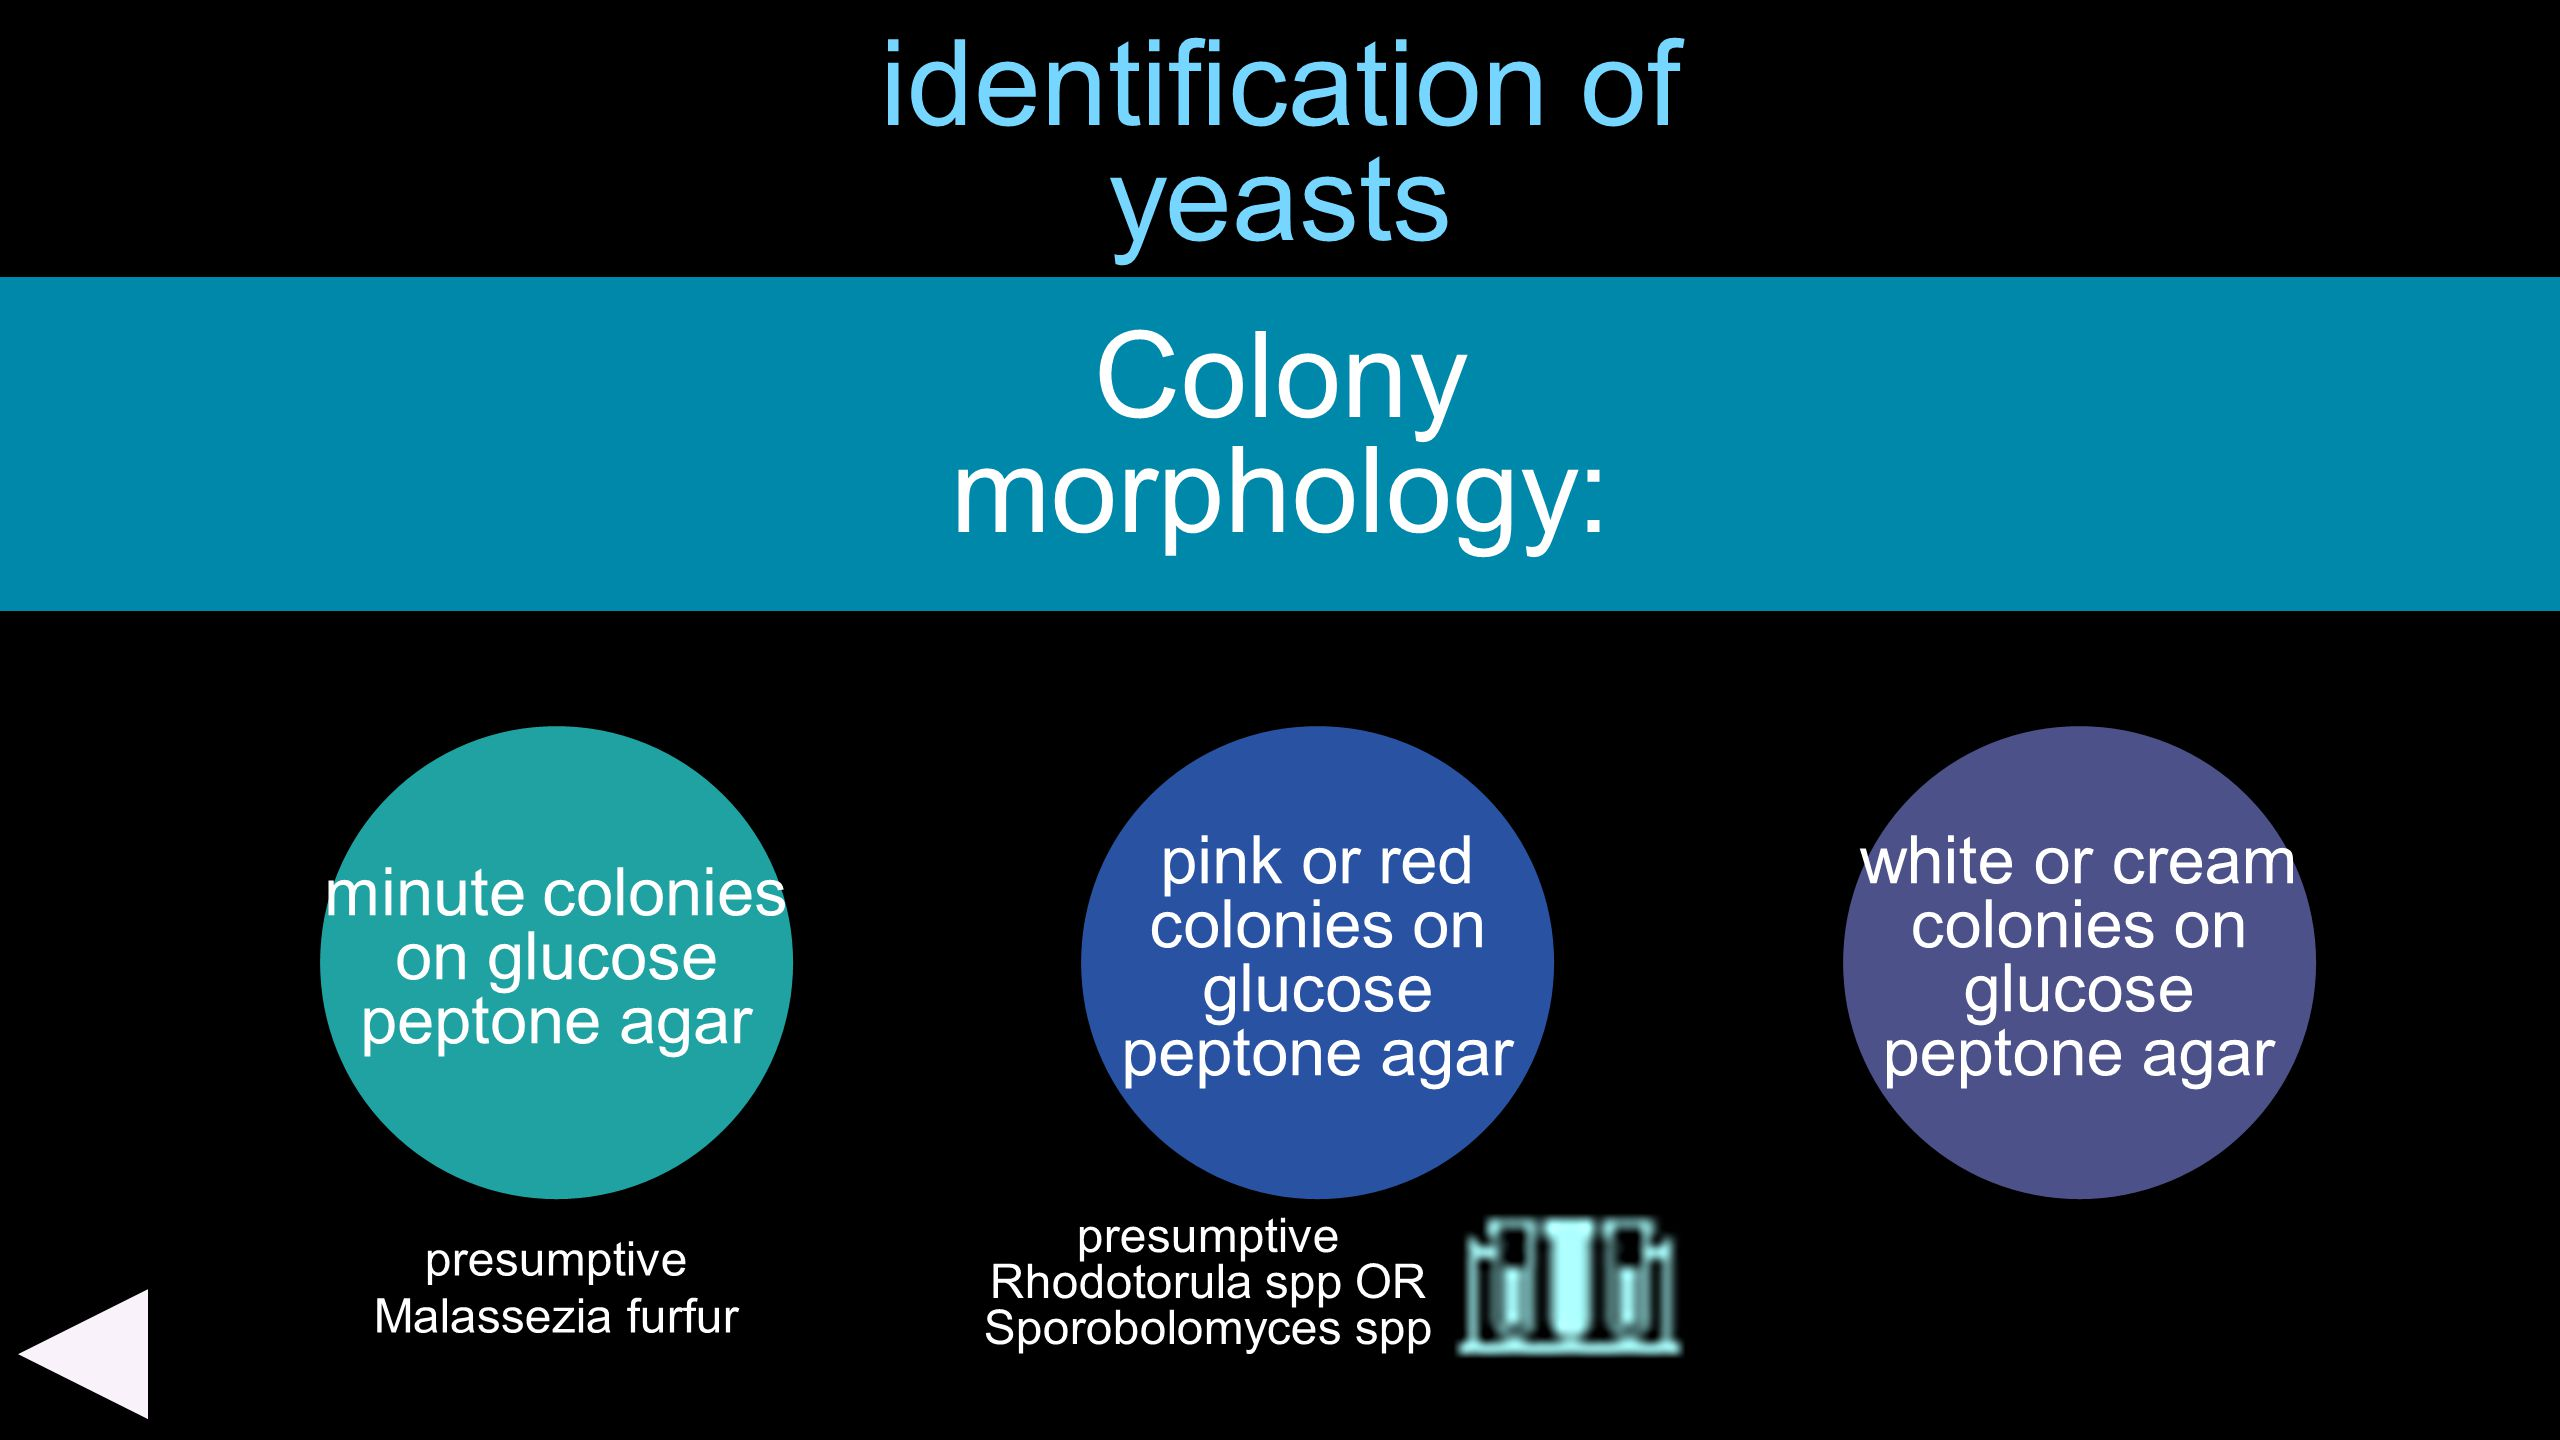 identification of yeasts minute colonies on glucose peptone agar Colony morphology: pink or red colonies on glucose peptone agar white or cream coloni